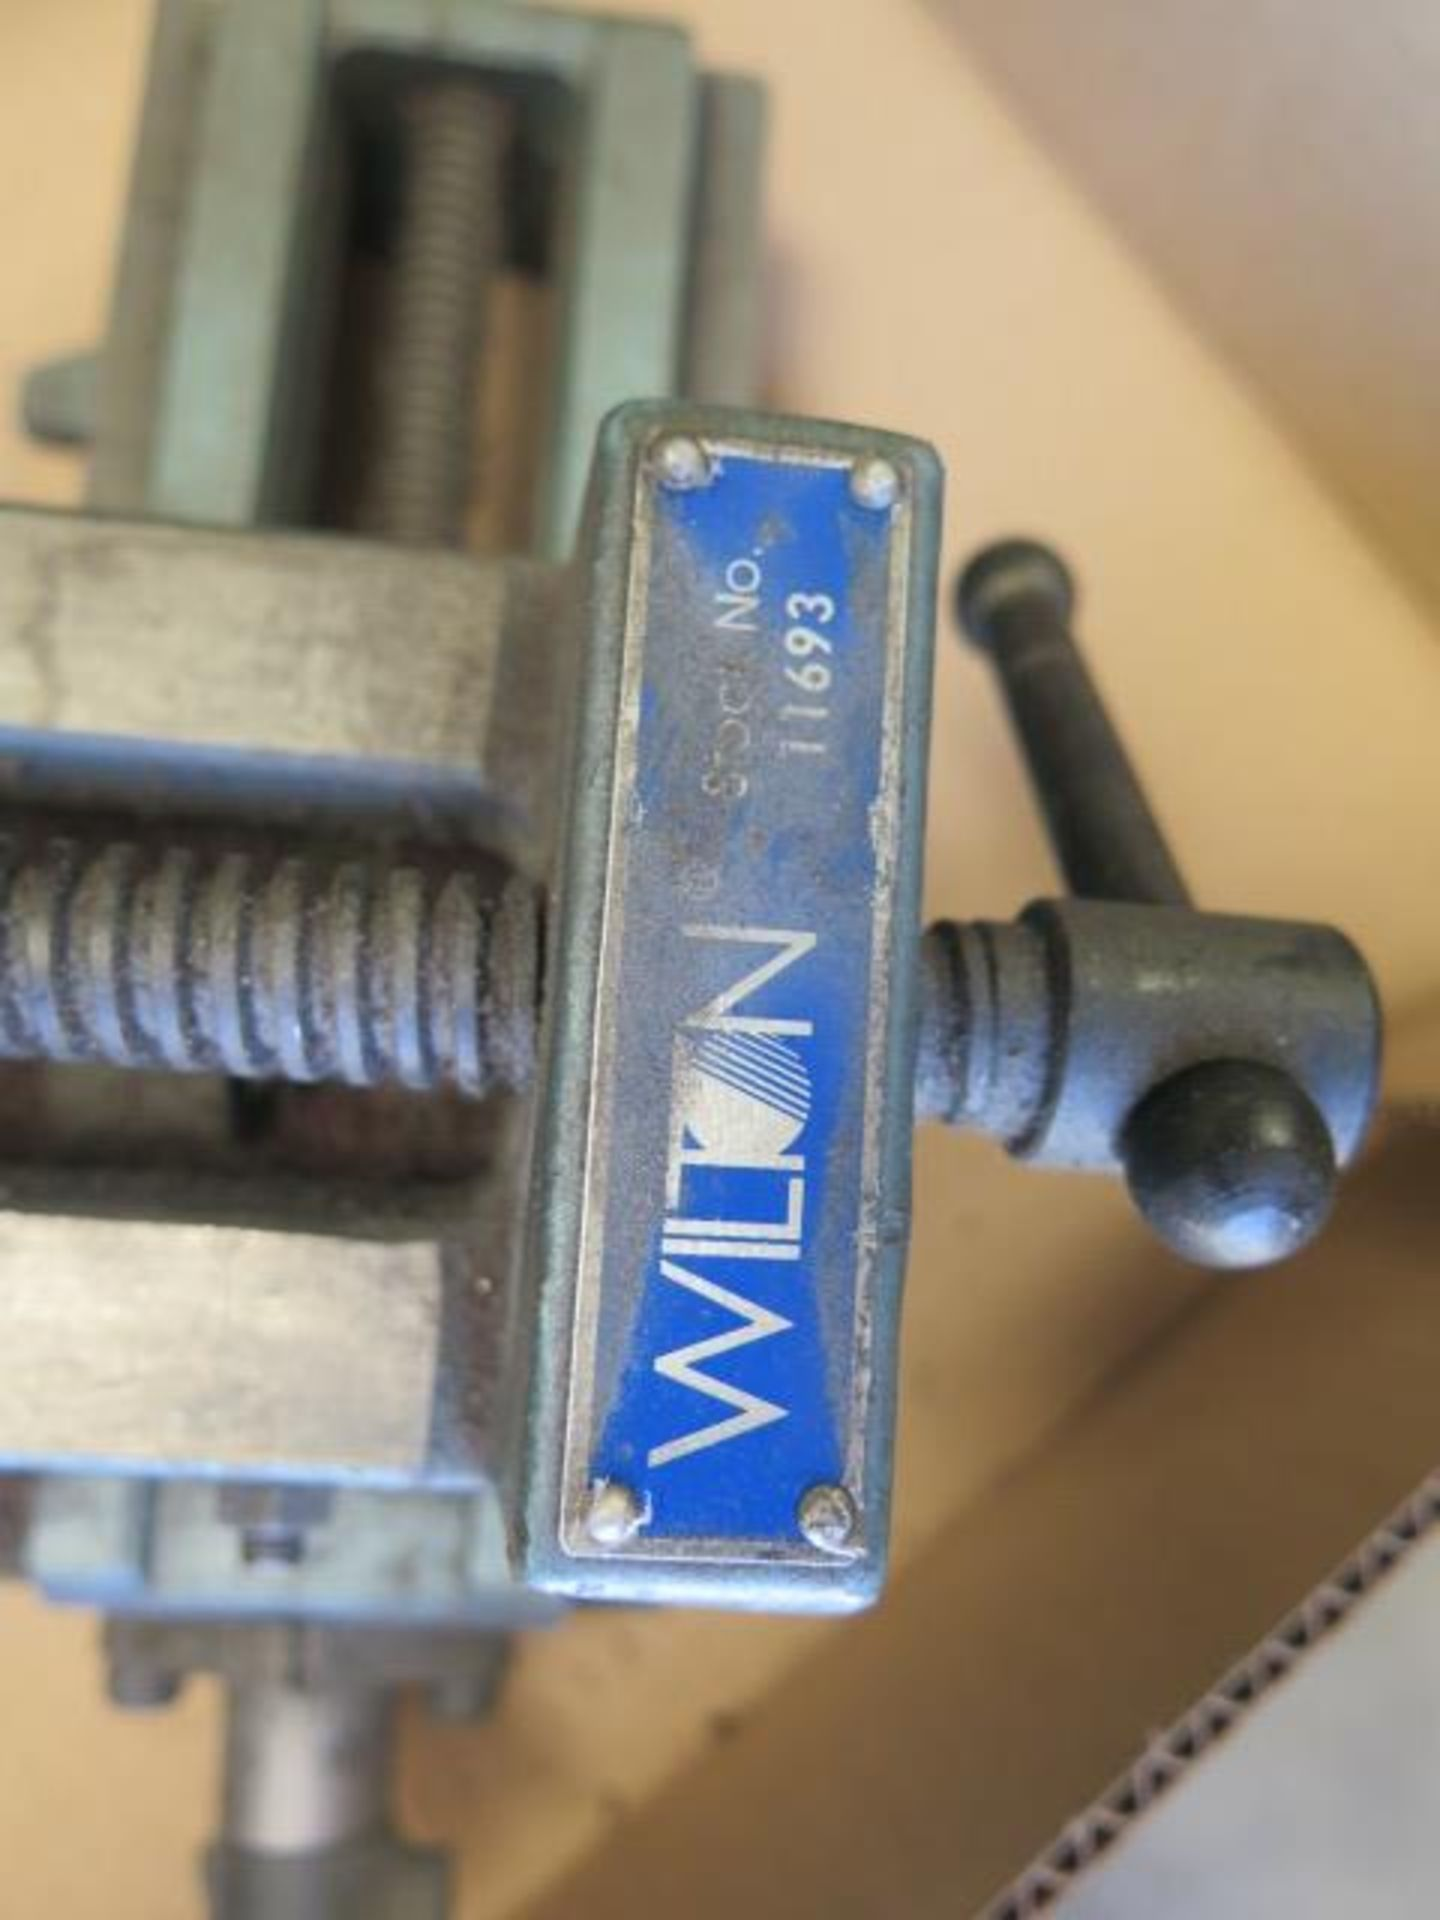 Wilton Cross Slide Vise (SOLD AS-IS - NO WARRANTY) - Image 6 of 6